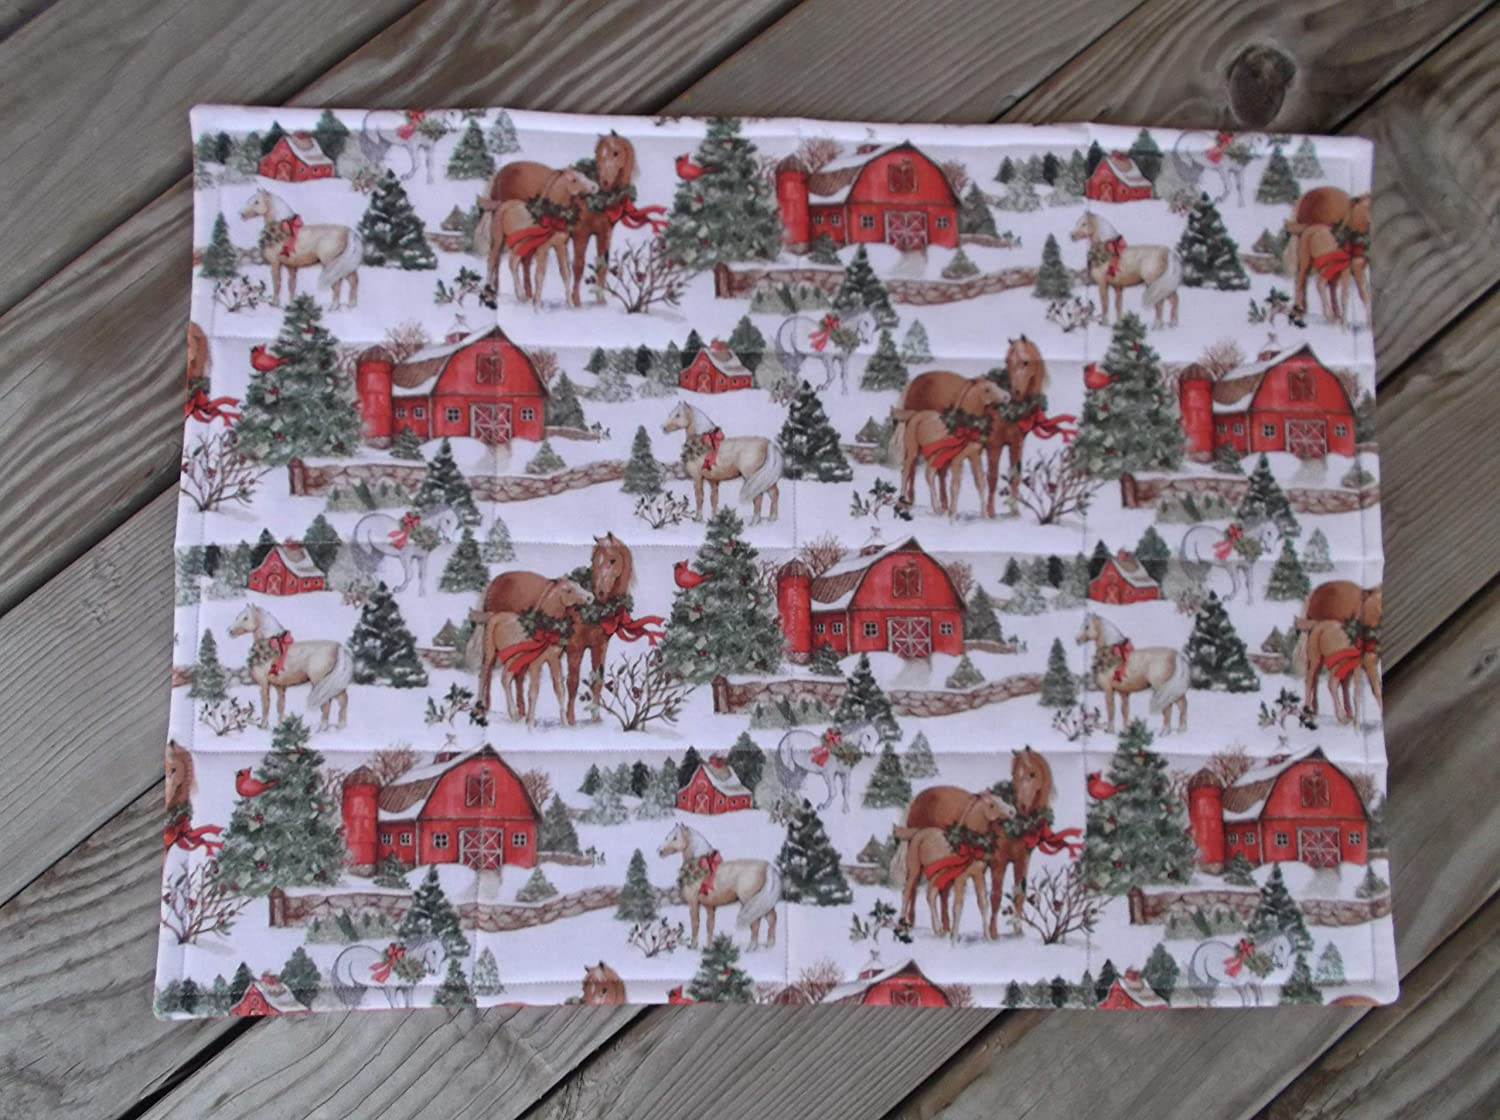 Fall Cabin Scene Quilted Fabric Placemats set of 8